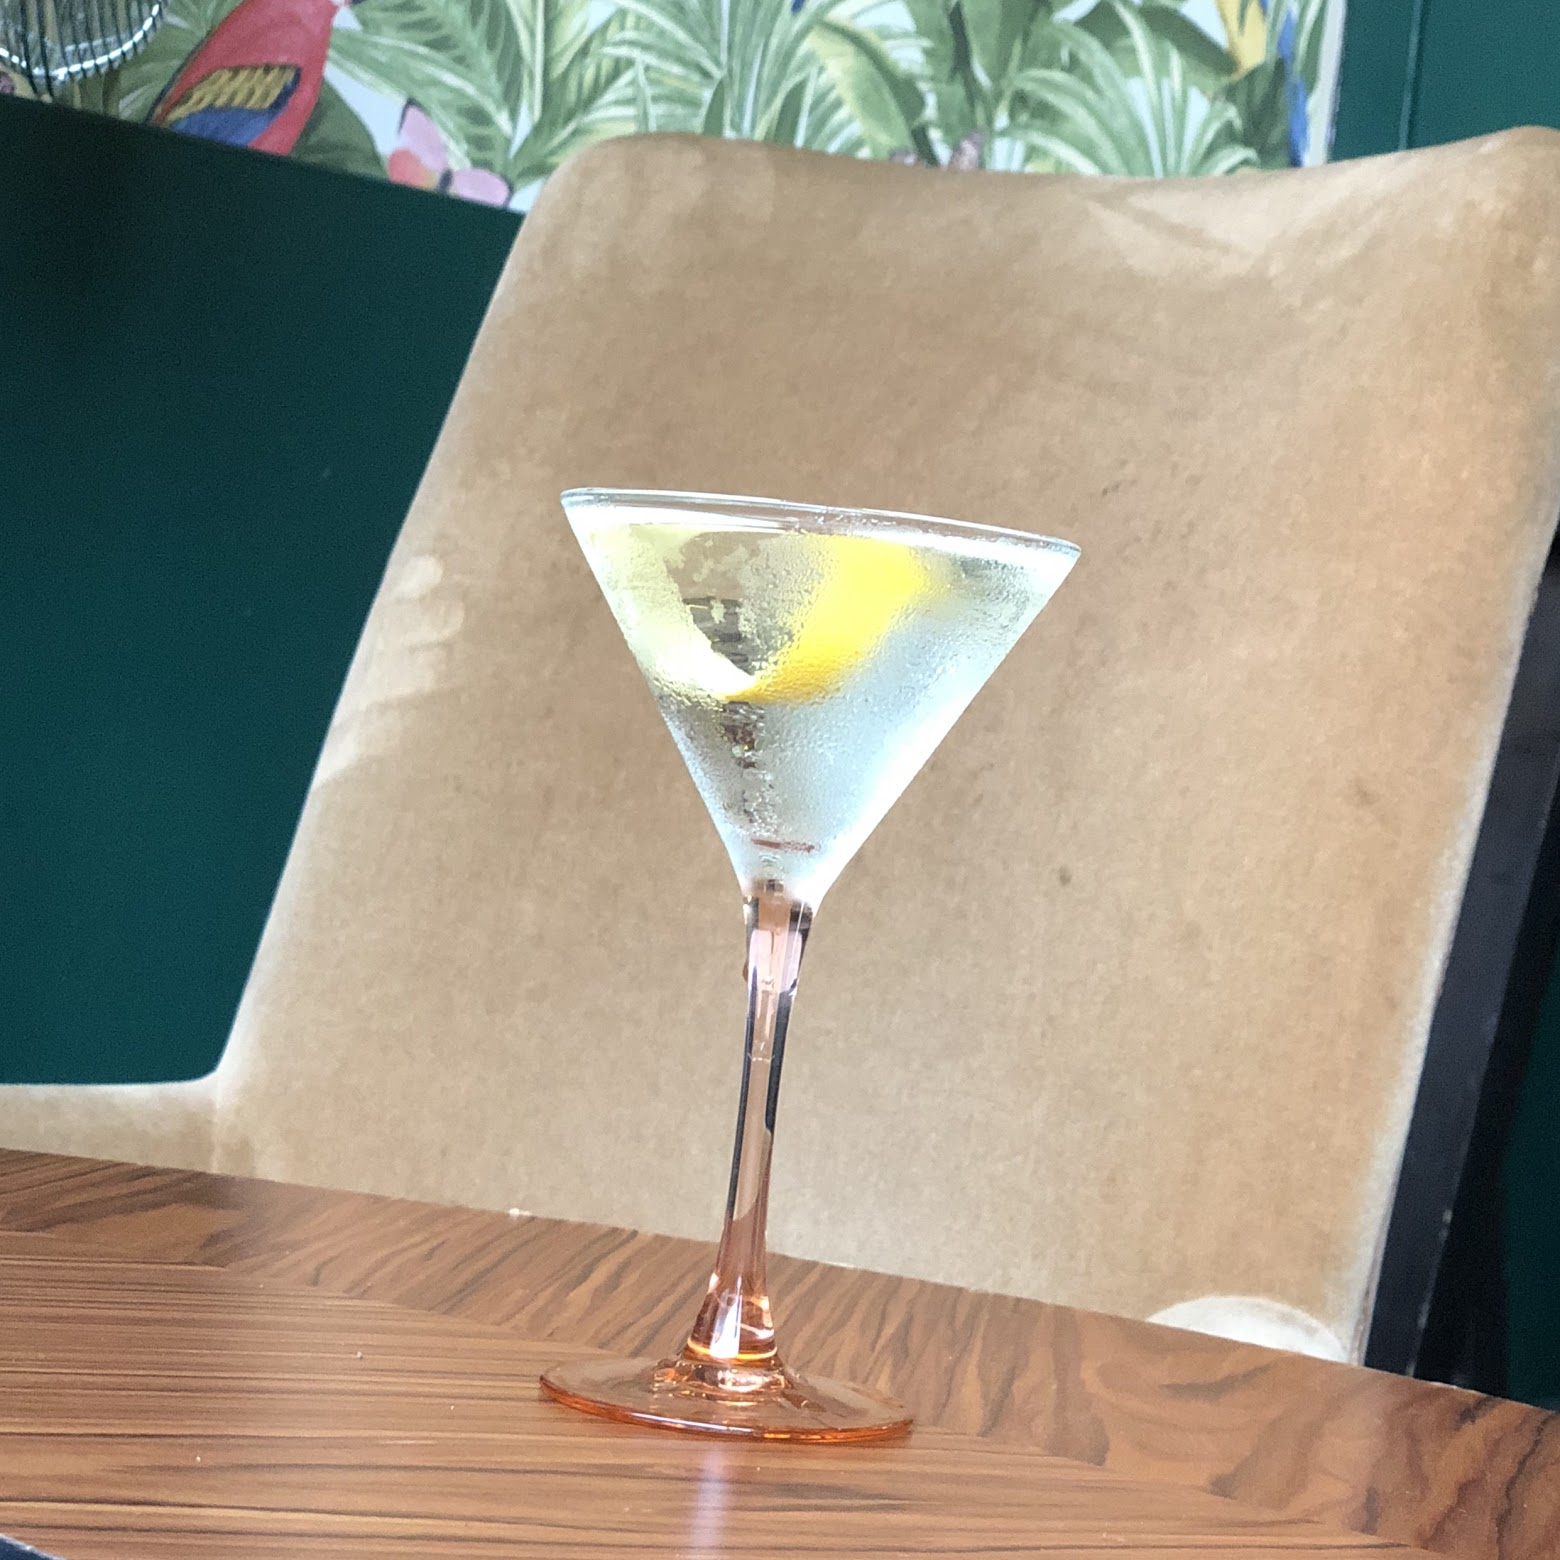 Ego Cocktail Milano, Vesper Martini e distillati di qualità